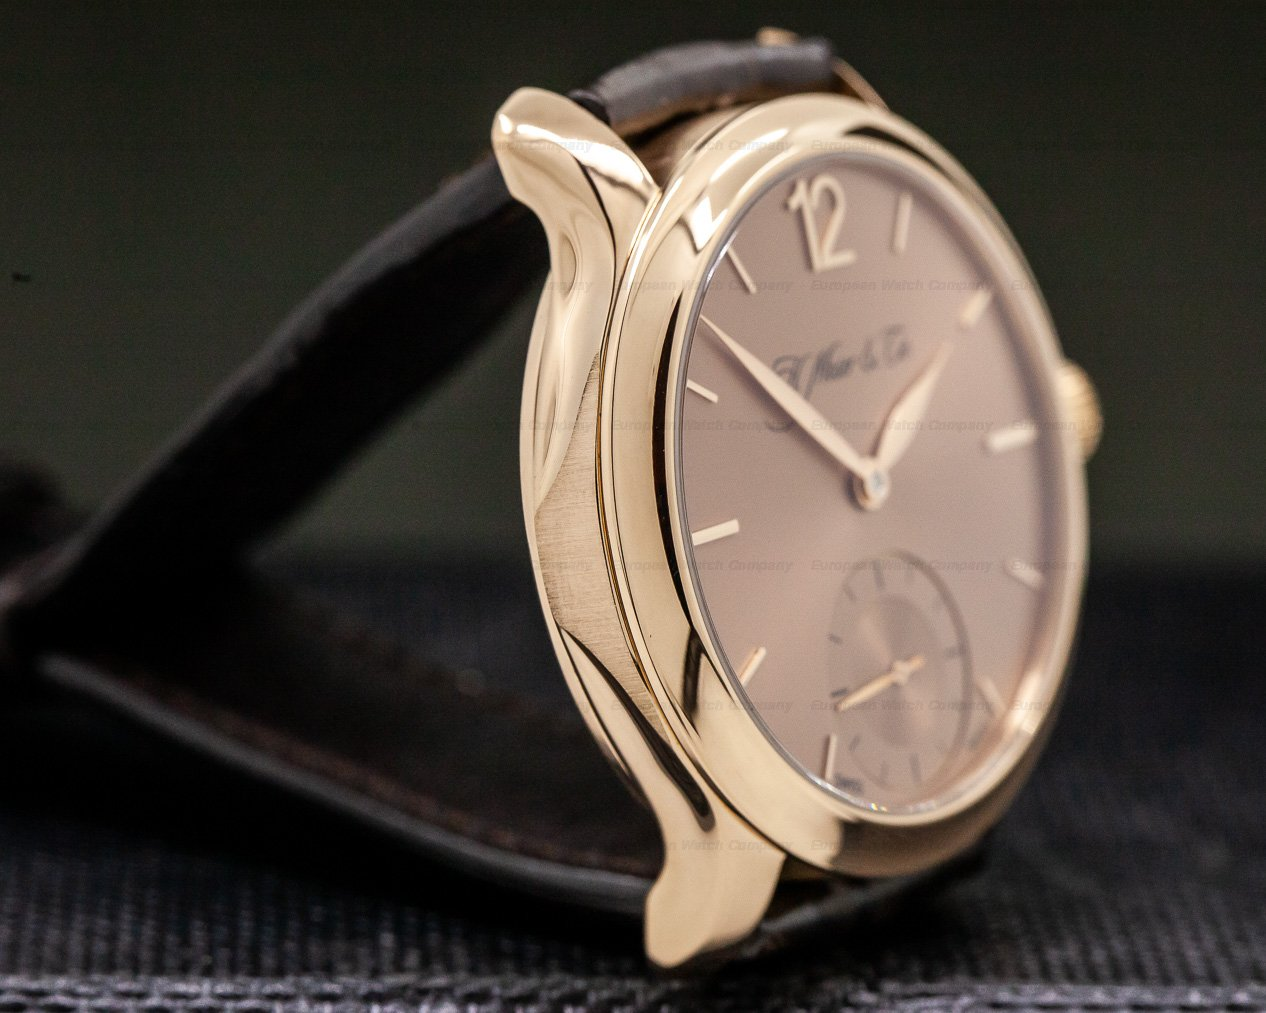 H. Moser & Cie 321.503 Endeavour MAYU 18K Rose Gold Salmon Dial